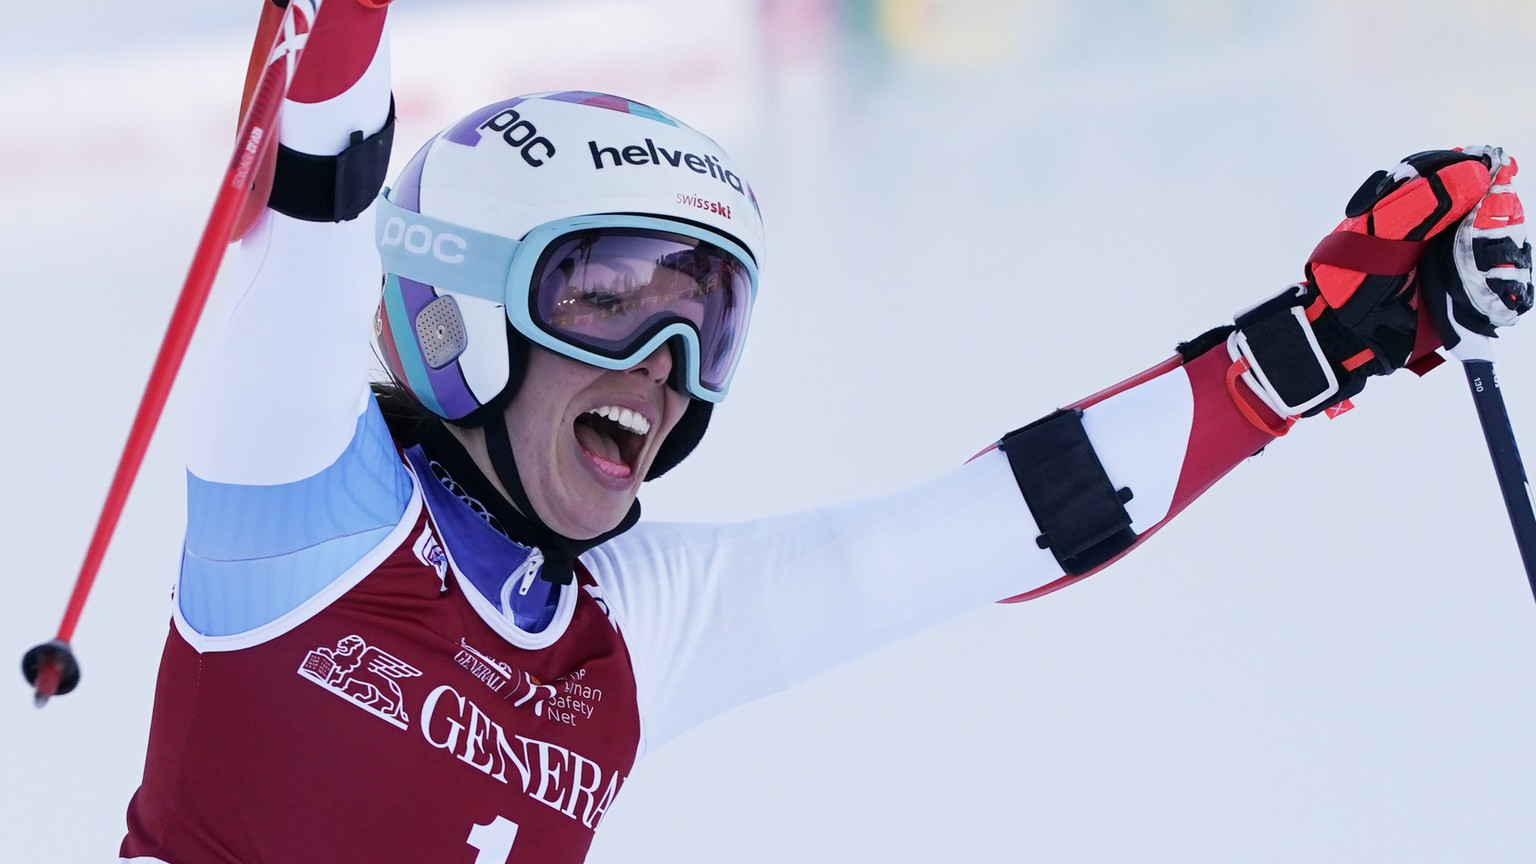 Switzerland's Michelle Gisin reacts after completing an alpine ski, women's World Cup giant slalom, in Kranjska Gora, Slovenia, Saturday, Jan. 16, 2021. (AP Photo/Giovanni Auletta)